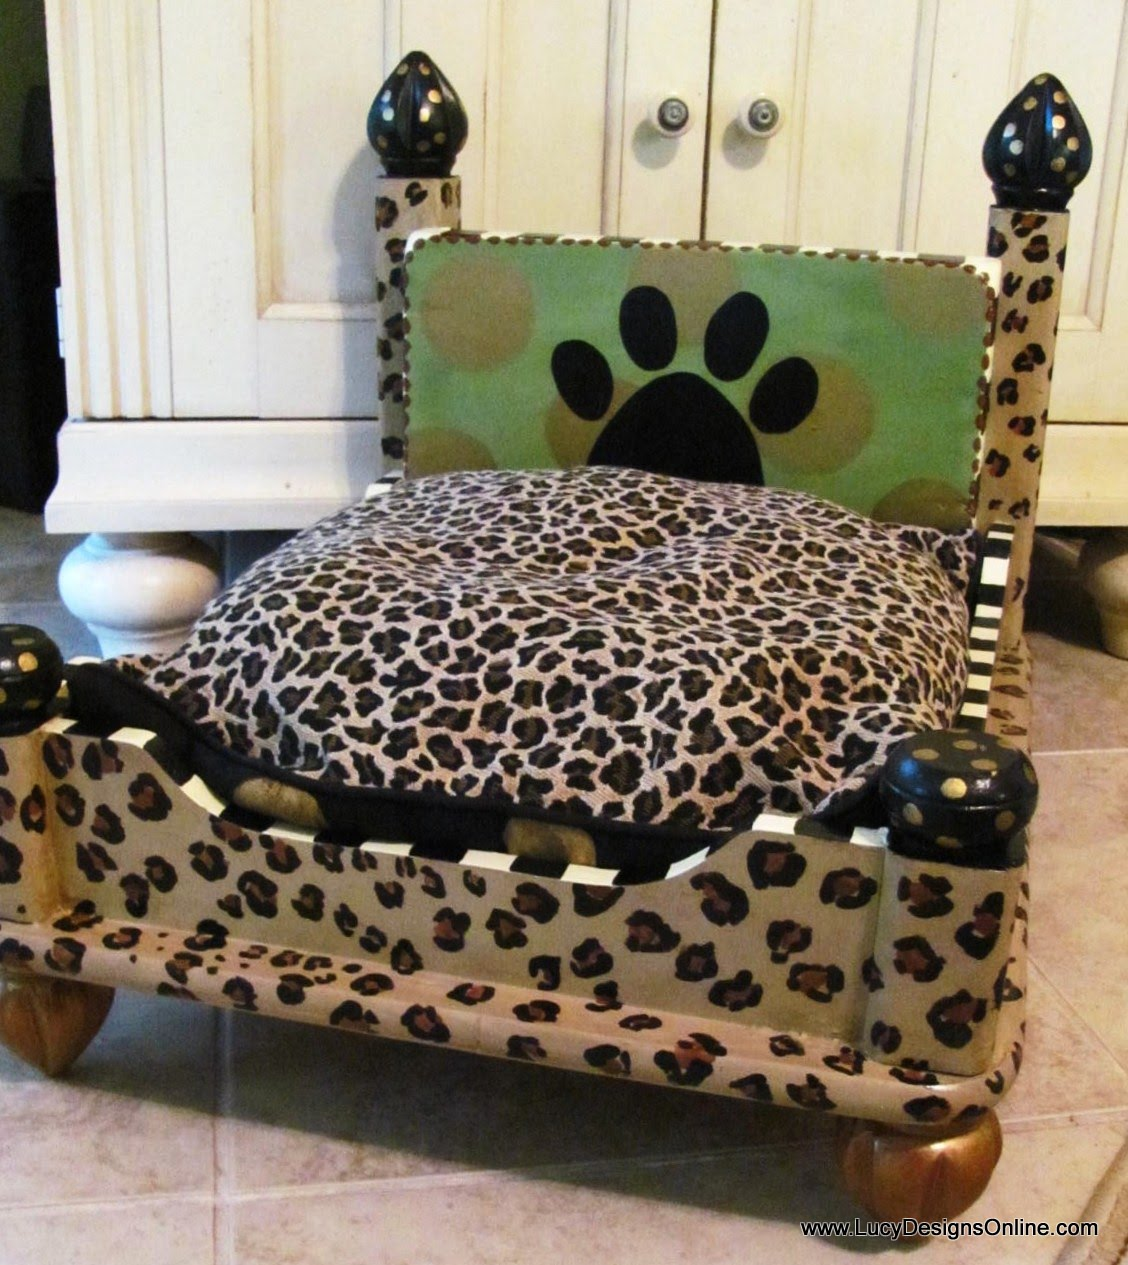 Dog Bed from an End Table - Leopard Print | Lucy Designs